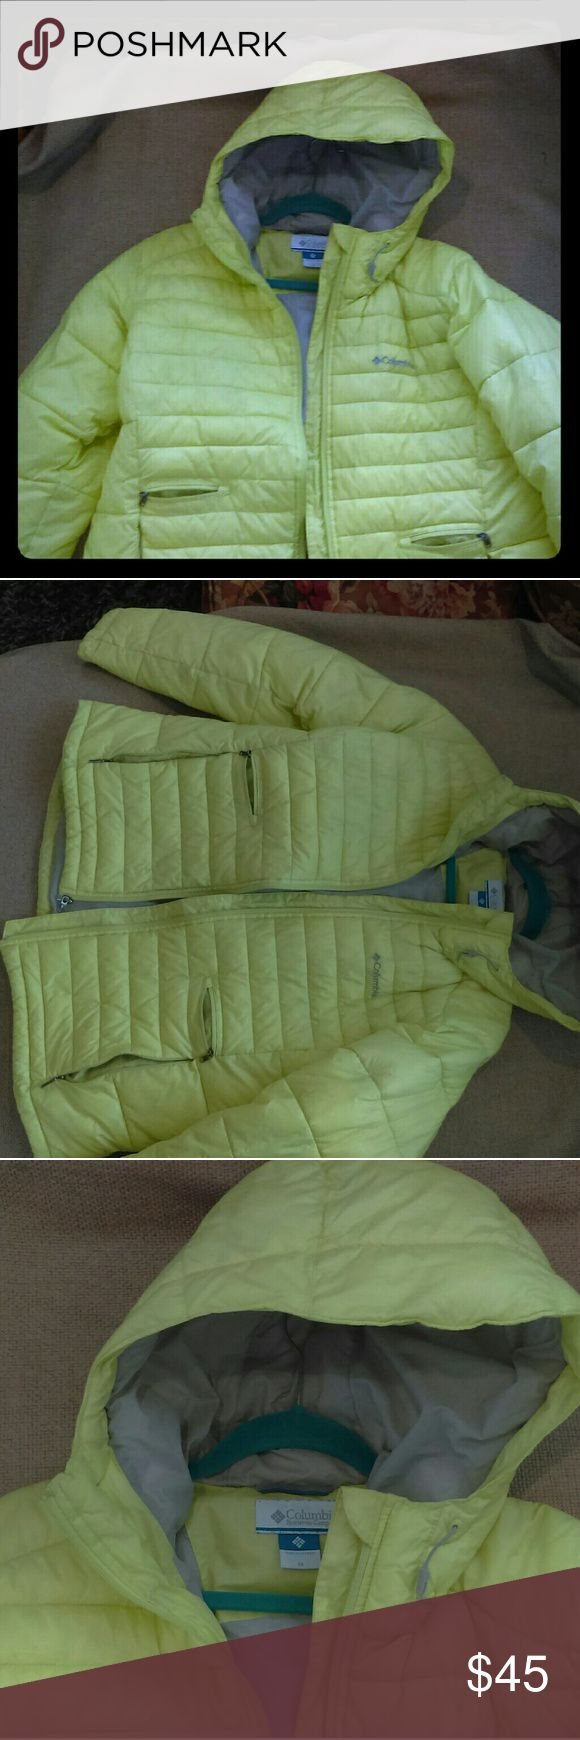 Columbia Parka, 1X Women's Bright yellow winter parka from a great brand, Columbia. Warm down fill, size 1X fits women sizes 12-16. Gently used, no holes or tears. Color is brighter than appears in the photo. Columbia Jackets & Coats Puffers